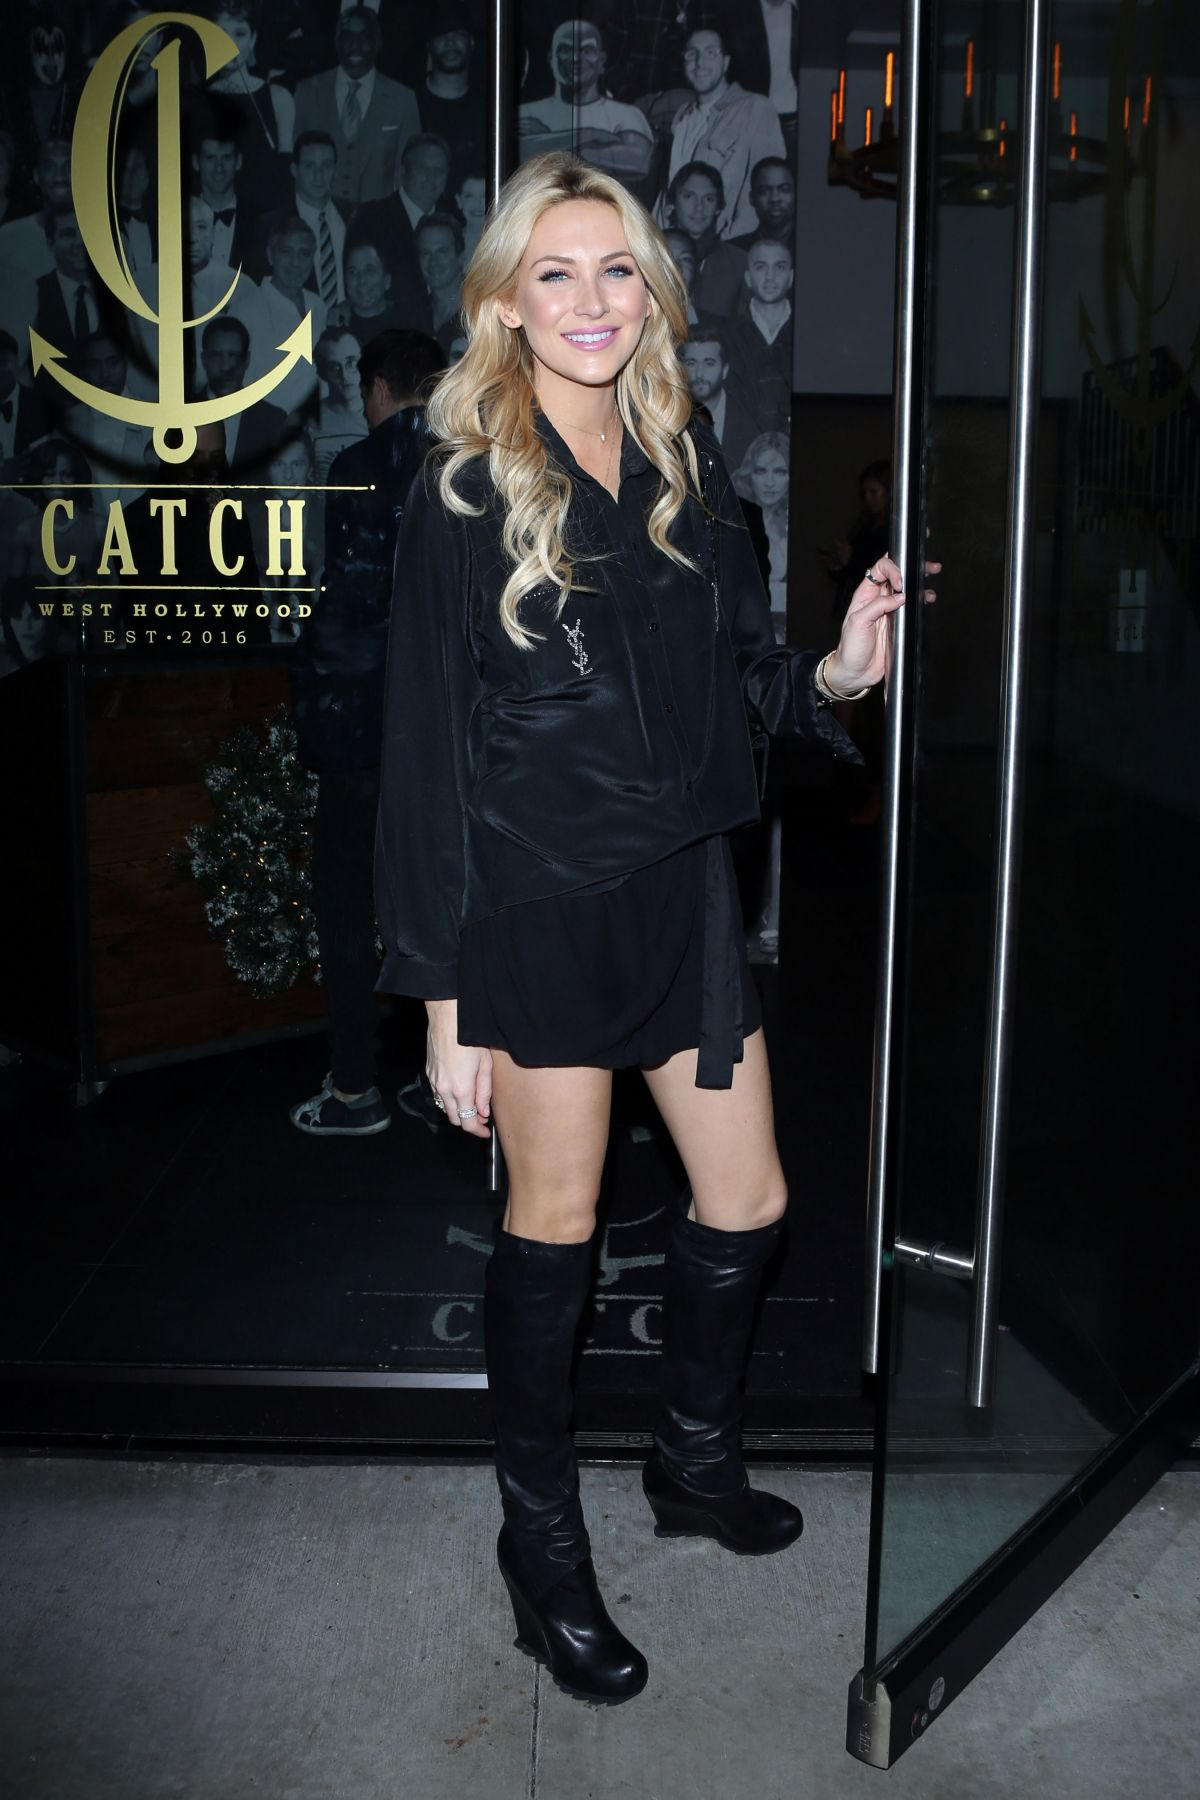 STEPHANIE PRATT at Catch LA in West Hollywood 12/18/2016